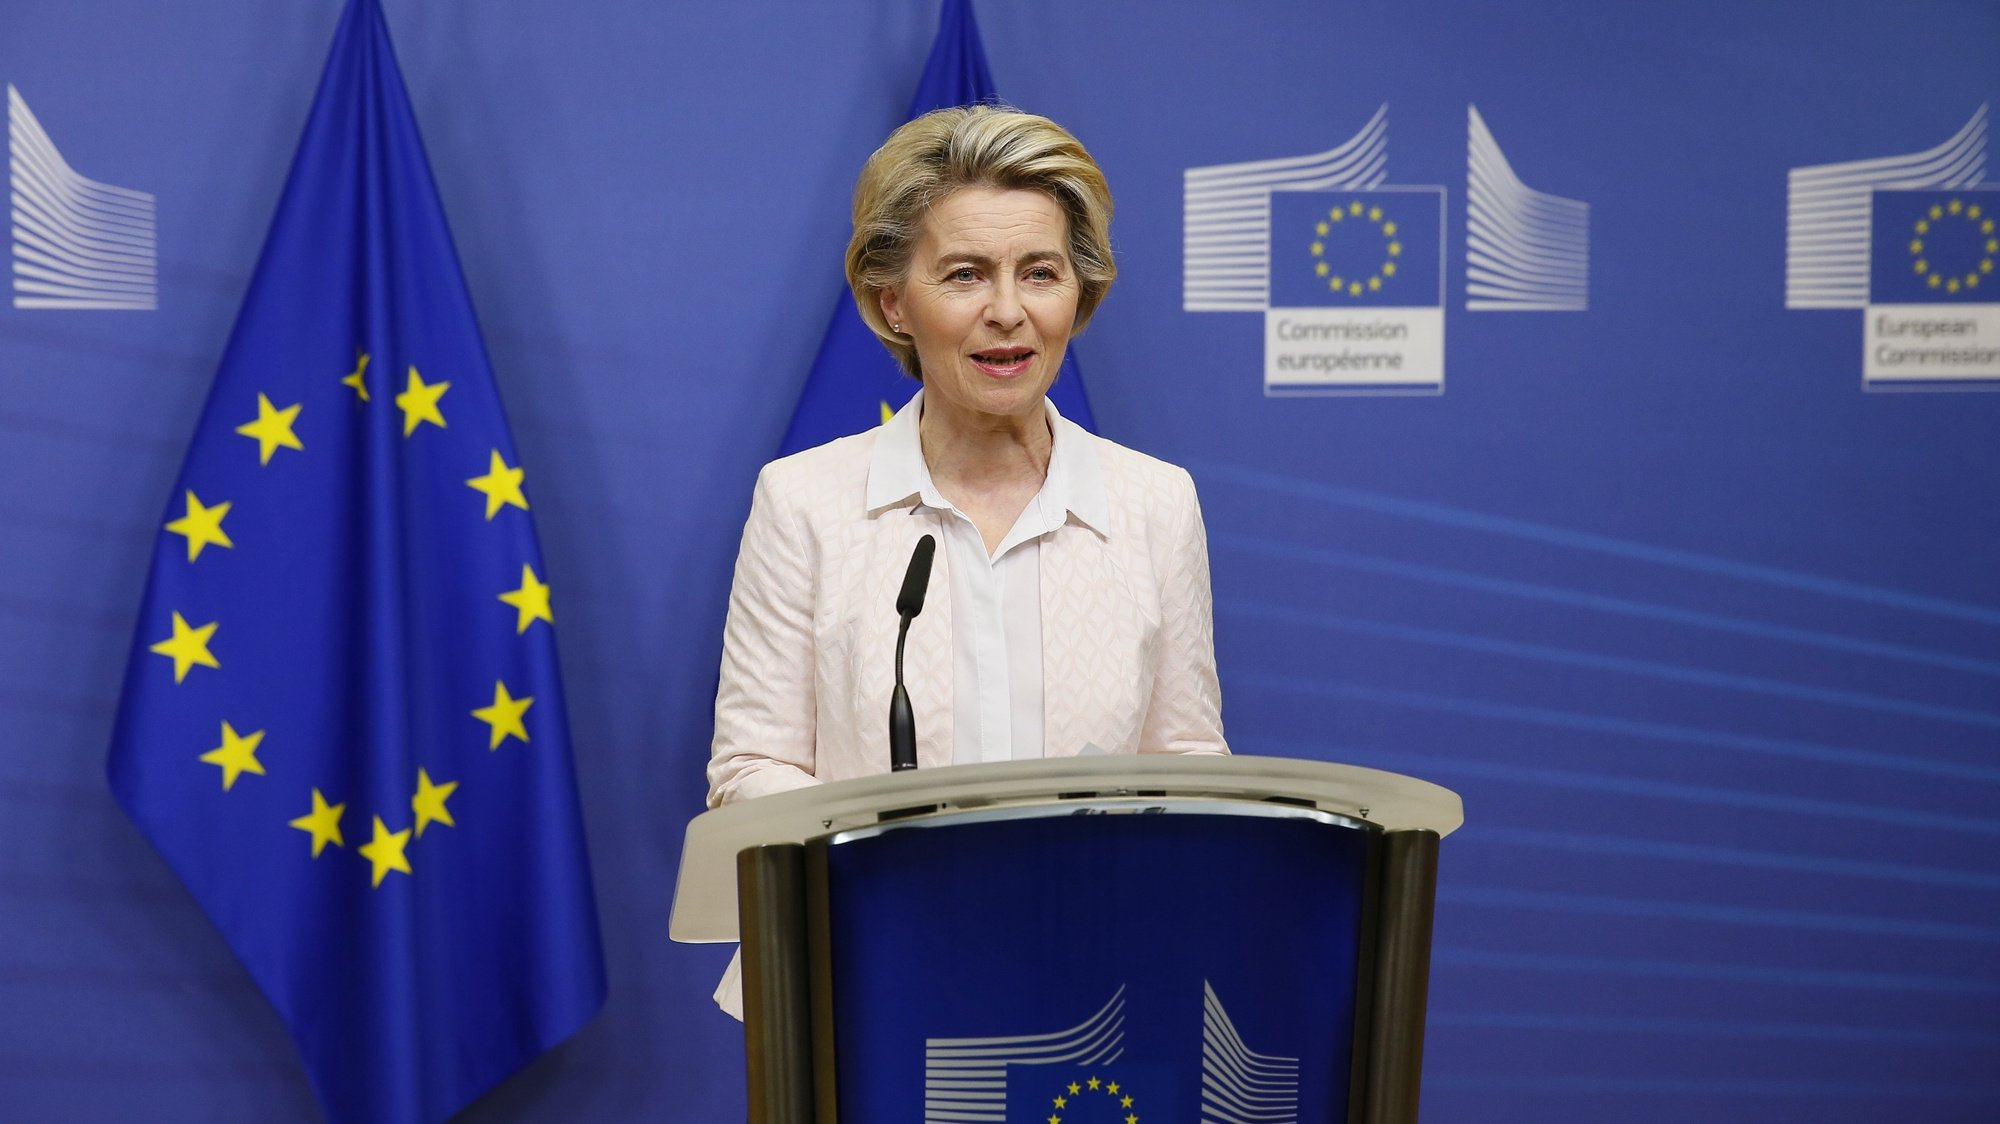 epa08864580 European Commission President Ursula von der Leyen gives a statement at the European Commission in Brussels, Belgium, 05 December 2020. British and EU negotiators have paused Brexit talks because they say significant divergences remain and the conditions for a deal between the two sides have not been met. A negotiations phase of eleven months that started on 31 January 2020 following the UK's exit from the EU ends on 31 December 2020.  EPA/JULIEN WARNAND / POOL